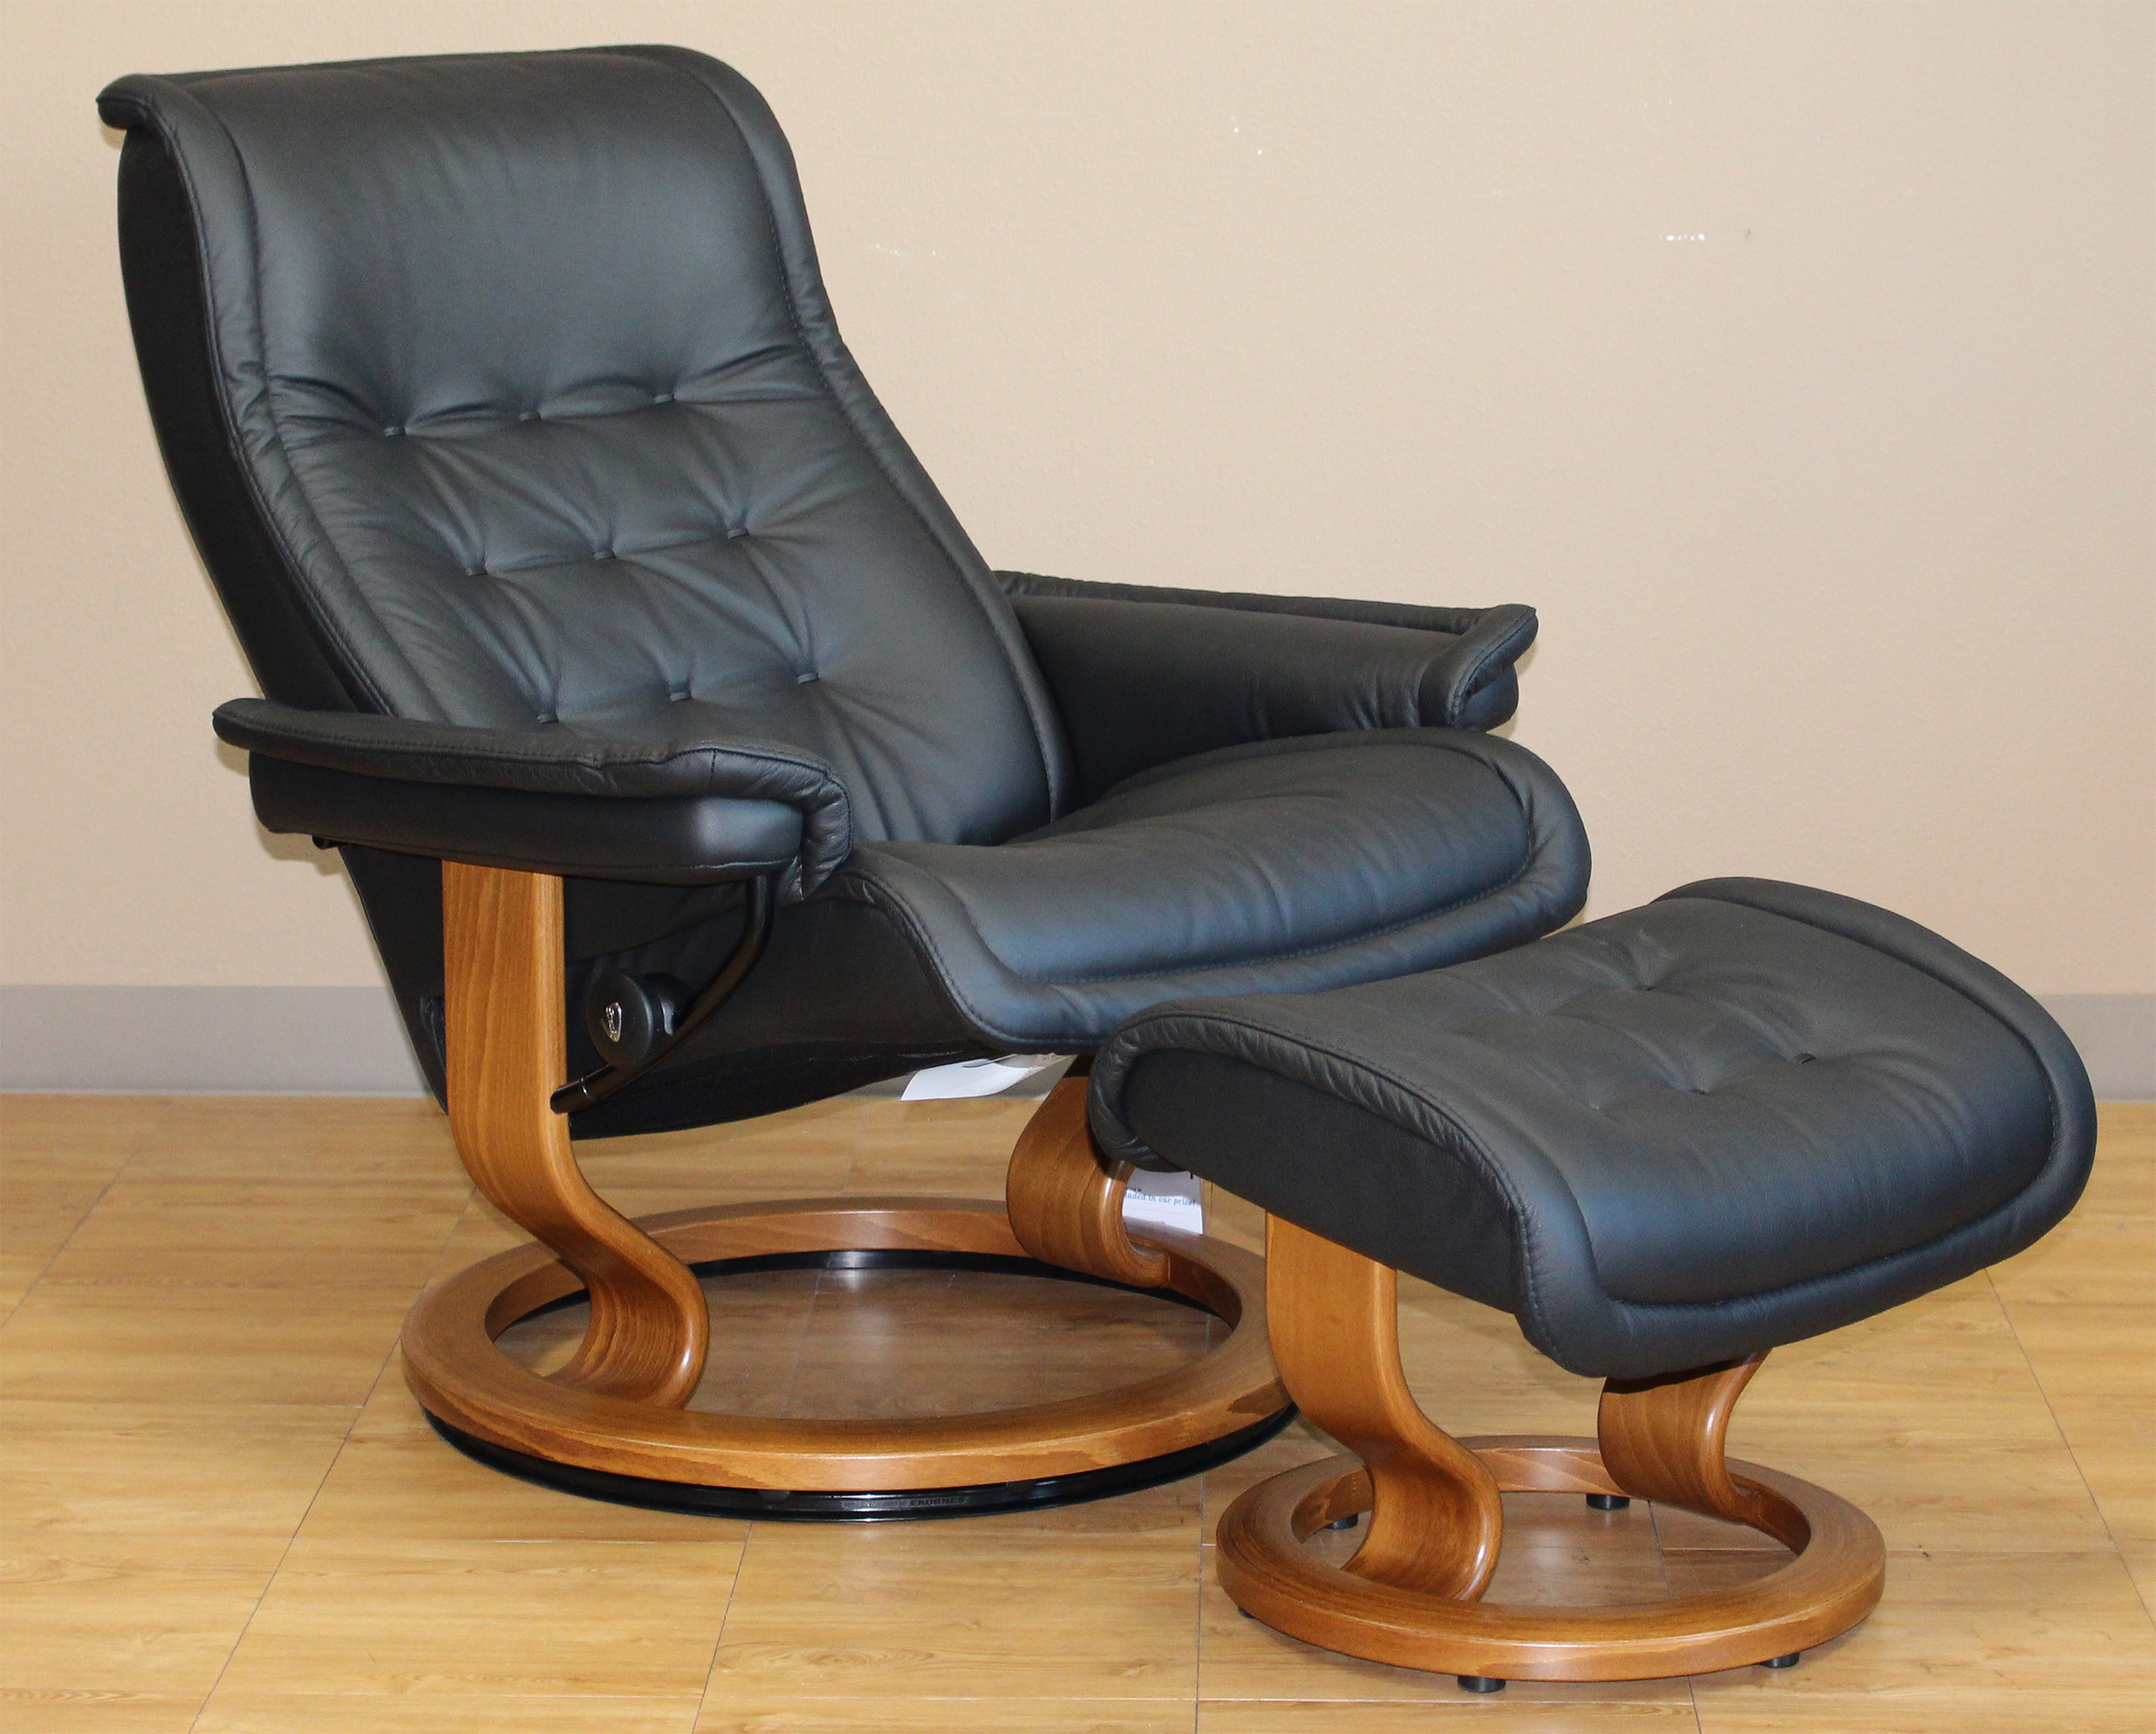 Ekornes Stressless Preisliste Stressless Alternative Fine Stressless City High Back Recliner